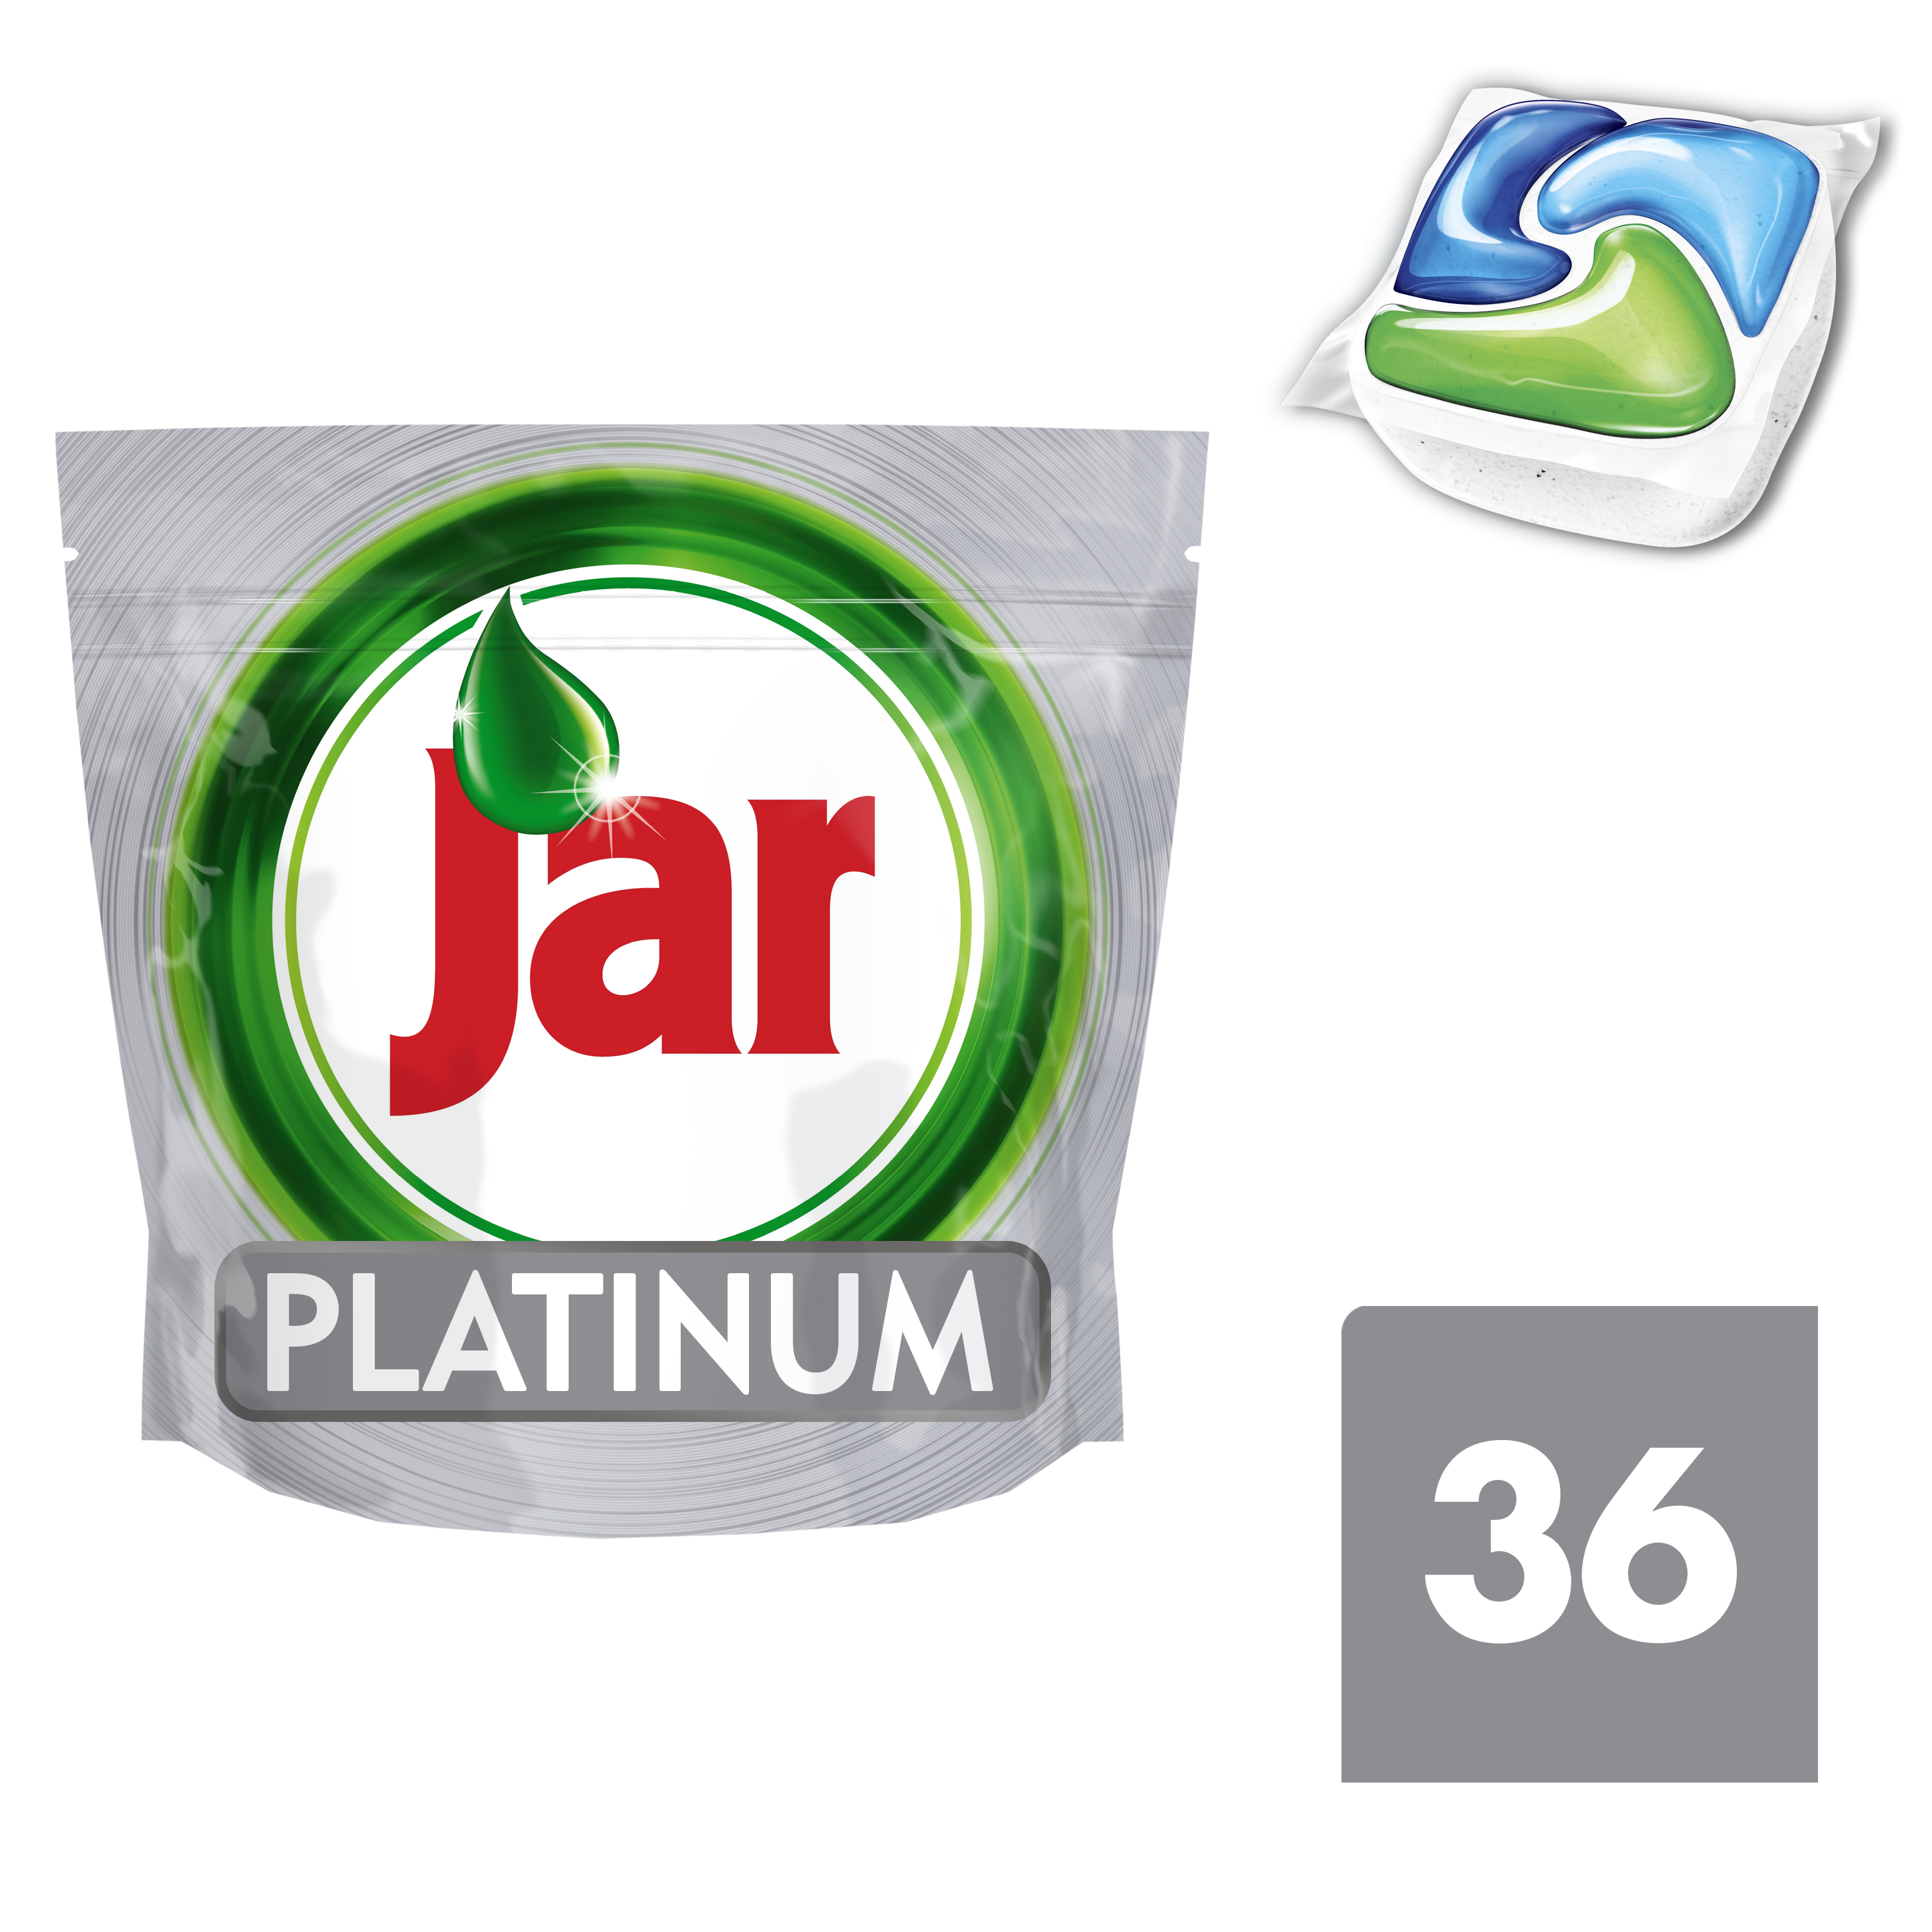 JAR Platinum Green 36 ks - kapsle do myčky